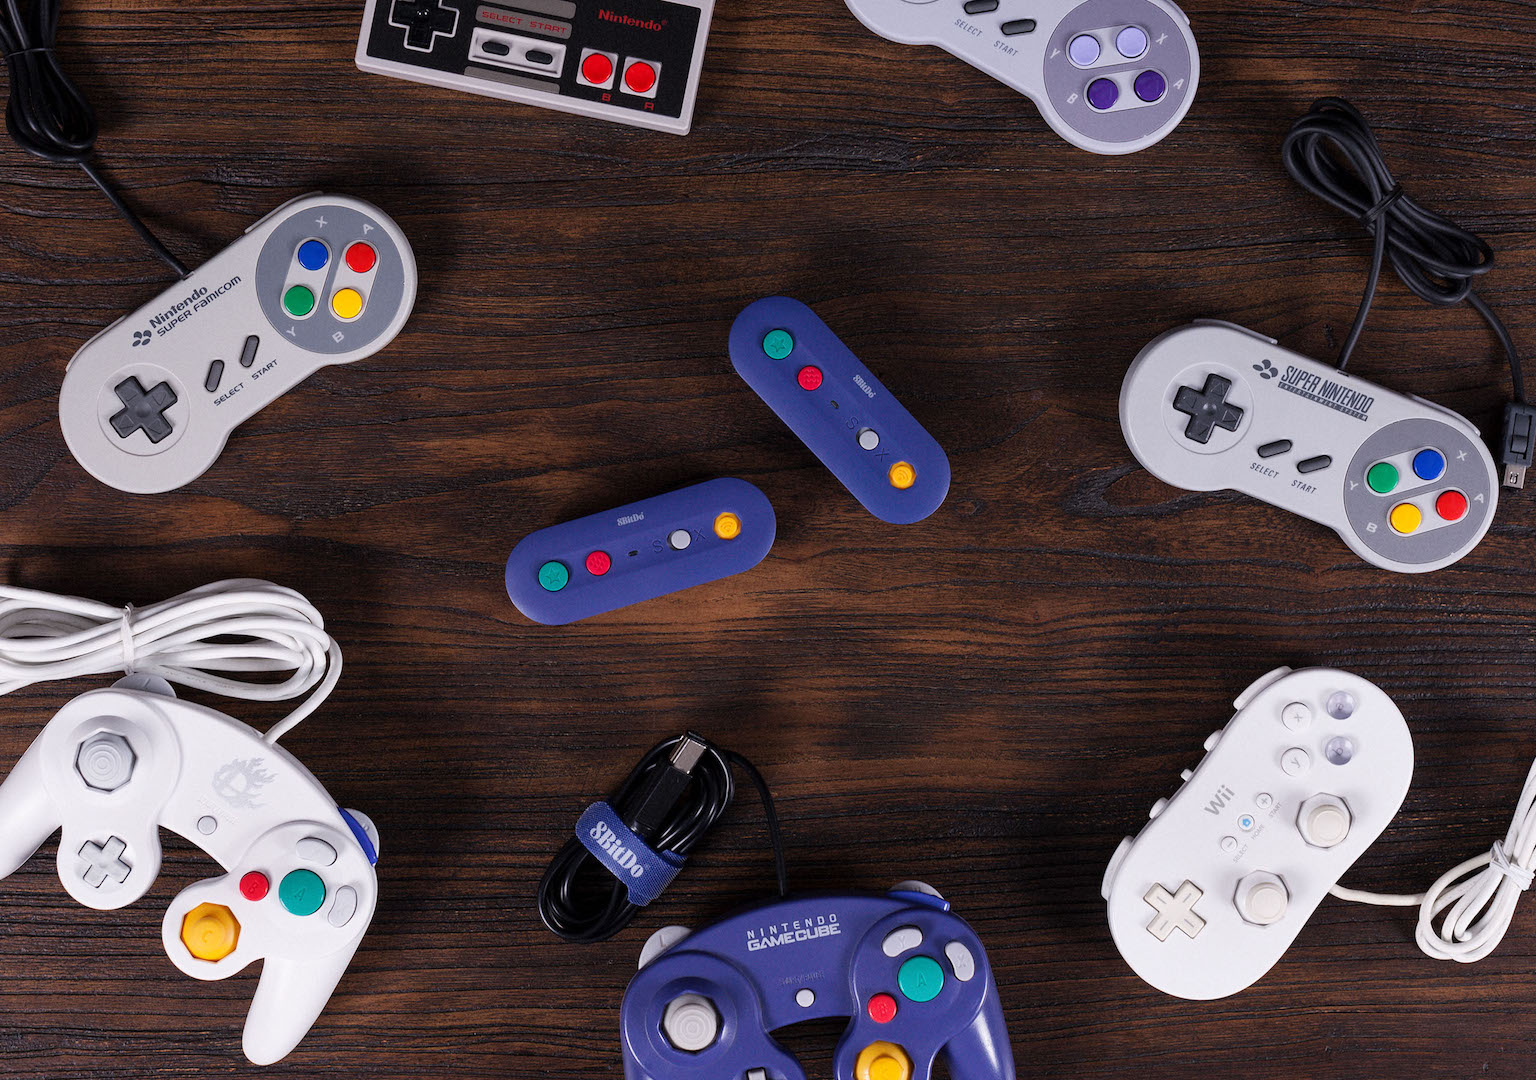 New 8Bitdo adapter makes wired GameCube controllers go wireless on Switch